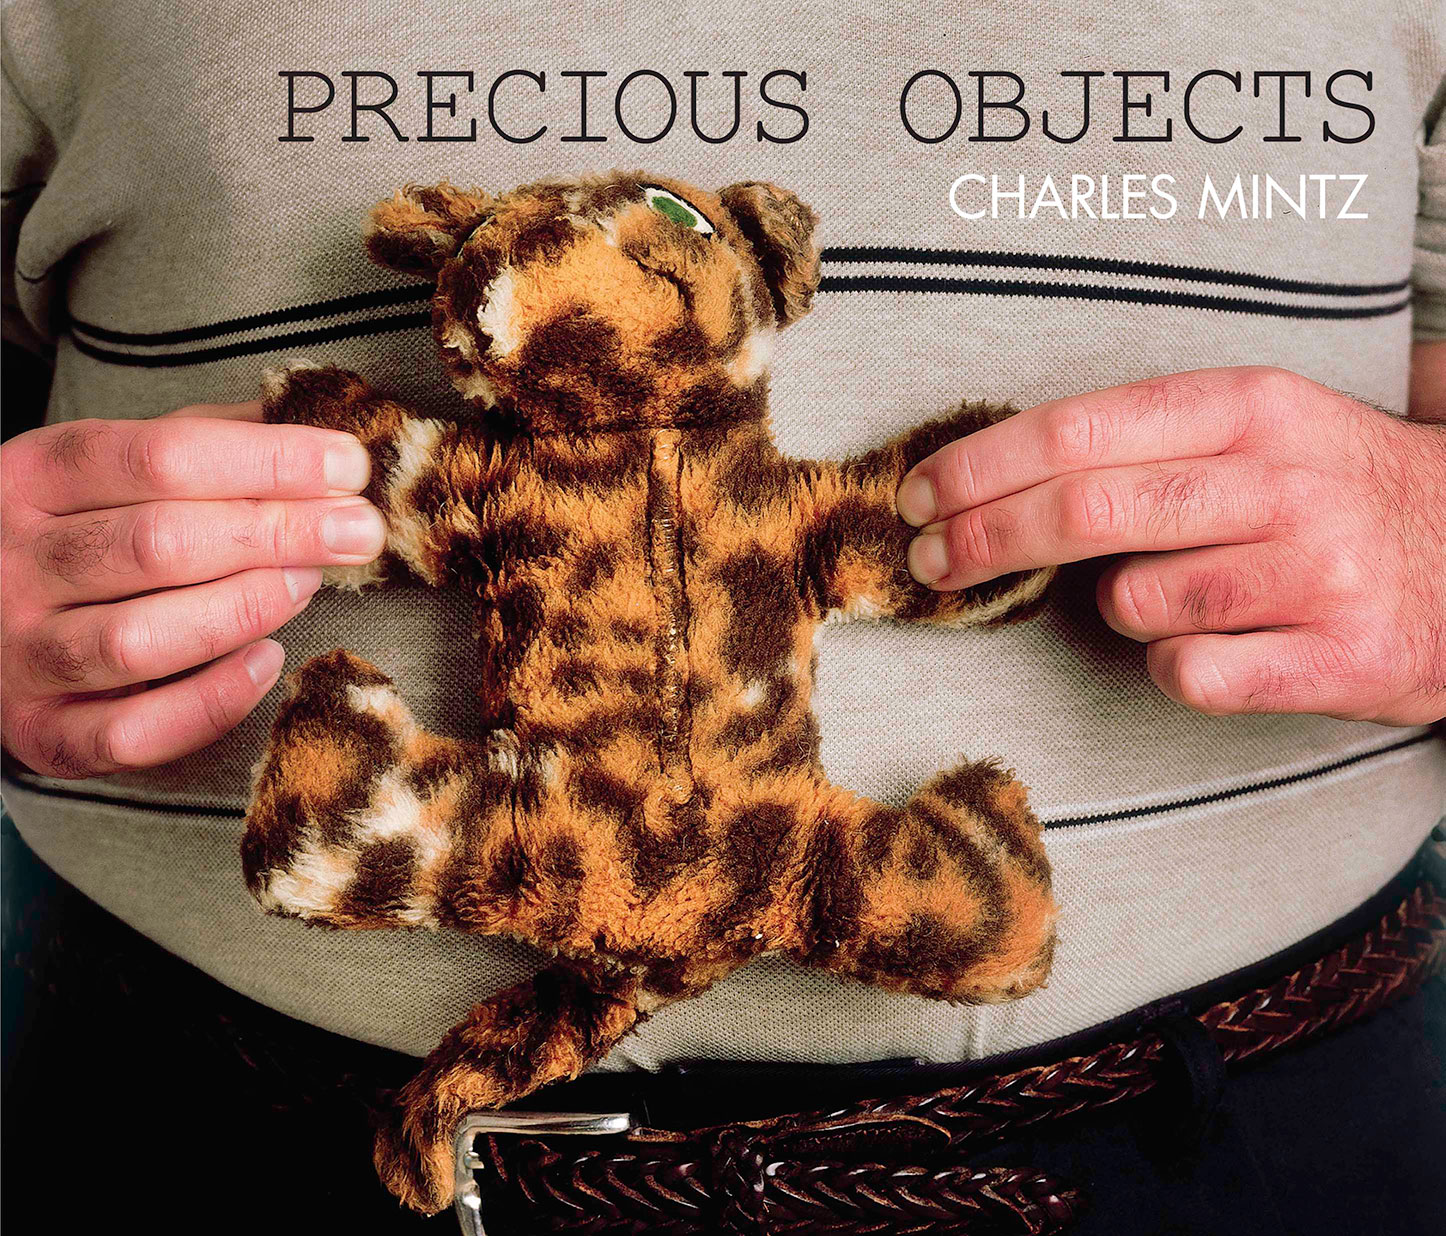 Precious-Objects-Cover-Smaller.jpg